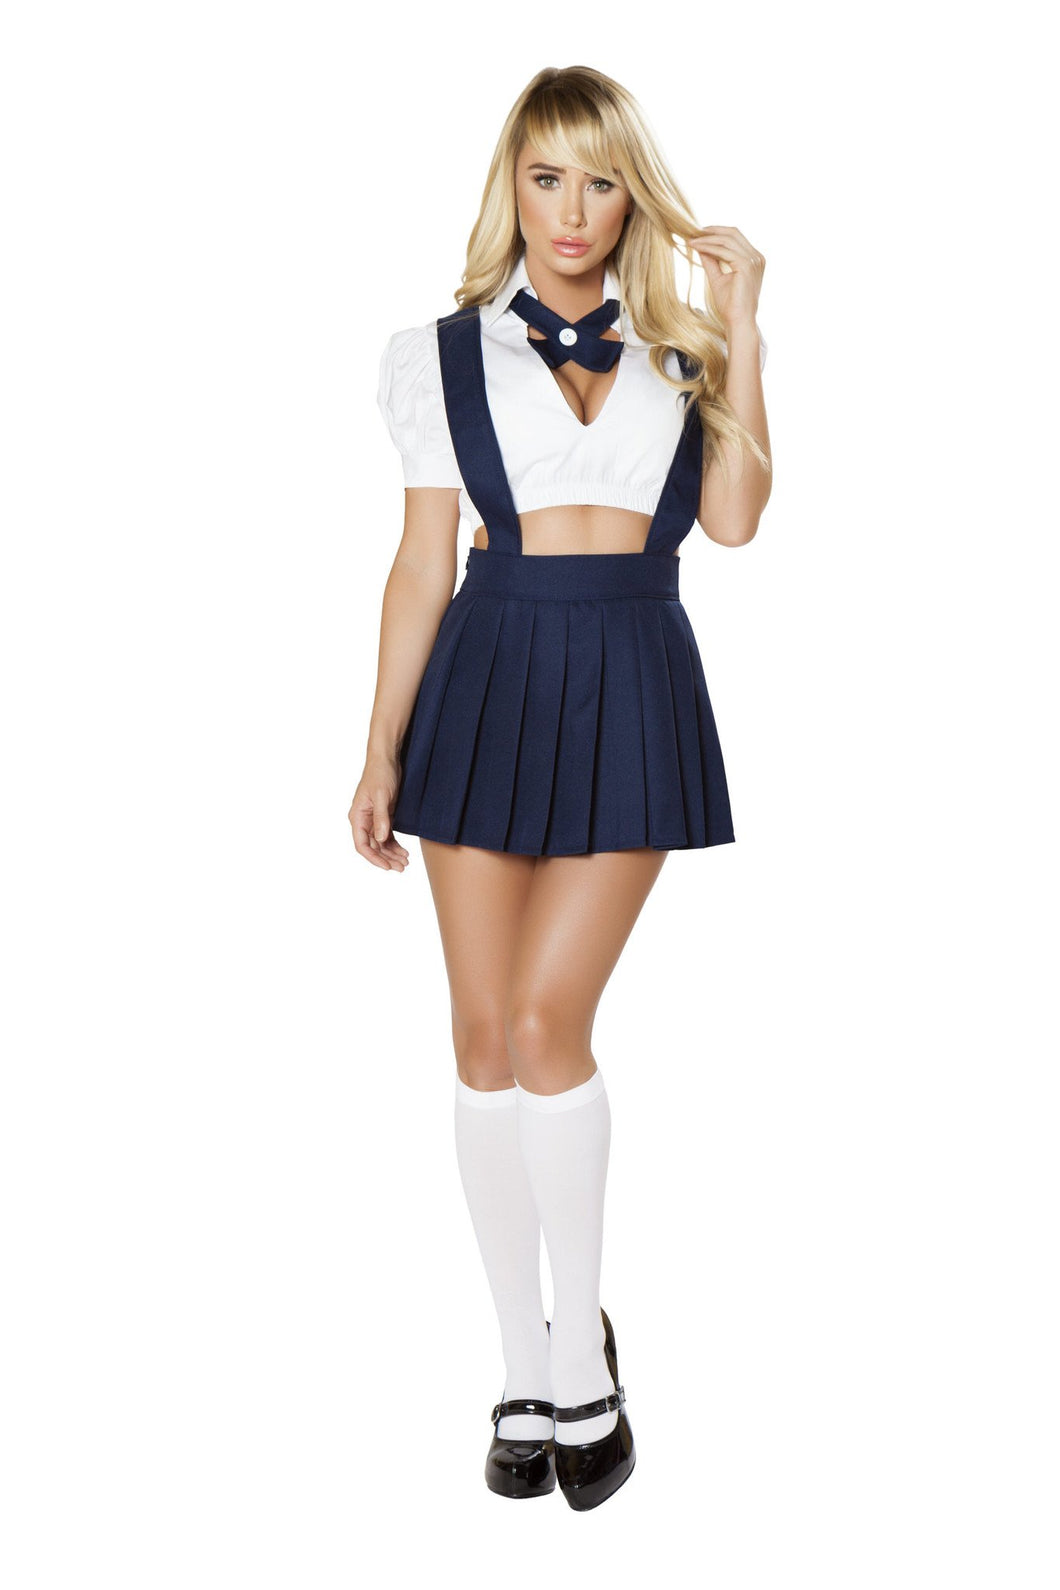 4754 - 3pc Naughty Private School Hottie